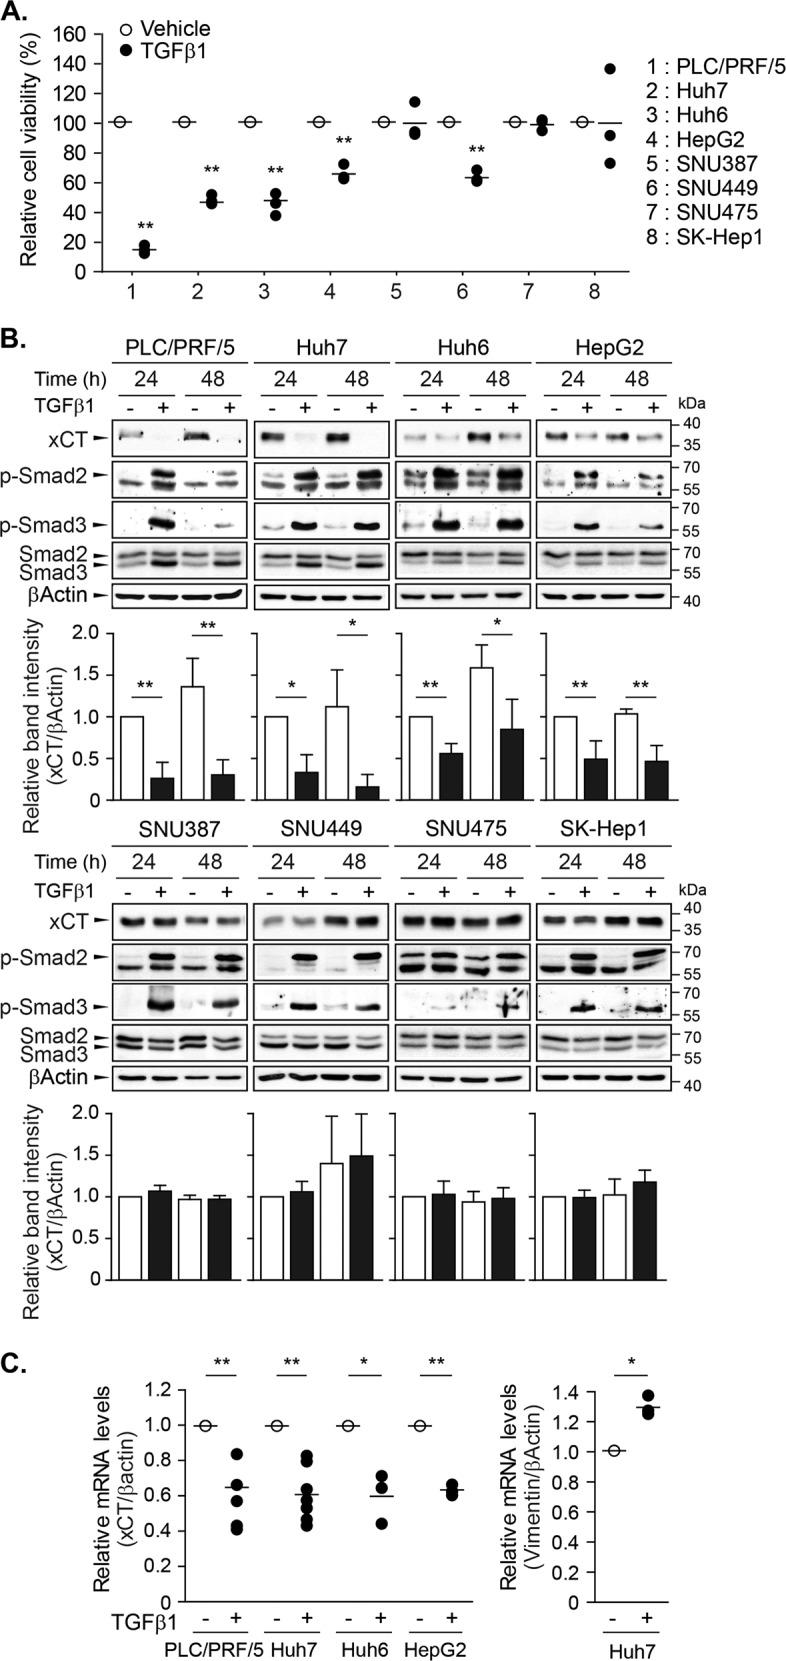 The repression of xCT expression by TGF-β1 in a subset of HCC cell lines. a TGF-β1 was administered to PLC/PRF/5, Huh7, Huh6, HepG2, SNU387, SNU449, SNU475, and SK-Hep1 cells at a concentration of 5 ng/mL and cell viability was measured using the CellTiter Glo® assay after 6 days; three independent experiments were performed in triplicate. b TGF-β1 was applied to PLC/PRF/5 ( n = 4), Huh7 ( n = 3), Huh6 ( n = 4), HepG2 ( n = 4), SNU387 ( n = 3), SNU449 ( n = 3), SNU475 ( n = 3), and SK-Hep1 ( n = 3) cells for 24 or 48 h at a concentration of 5 ng/mL, and then whole-cell lysates were assessed with western blot analyses. Representative images are shown. c PLC/PRF/5 ( n = 5), Huh7 ( n = 7), Huh6 ( n = 3), and HepG2 ( n = 3) cells were treated with 5 ng/mL of TGF-β1 for 24 h and then collected for RT-PCR analyses to detect the mRNA levels of xCT, vimentin, and β-actin; vimentin was used as a positive TGF-β1-responsive gene. All data are expressed as the mean ± SD. * P